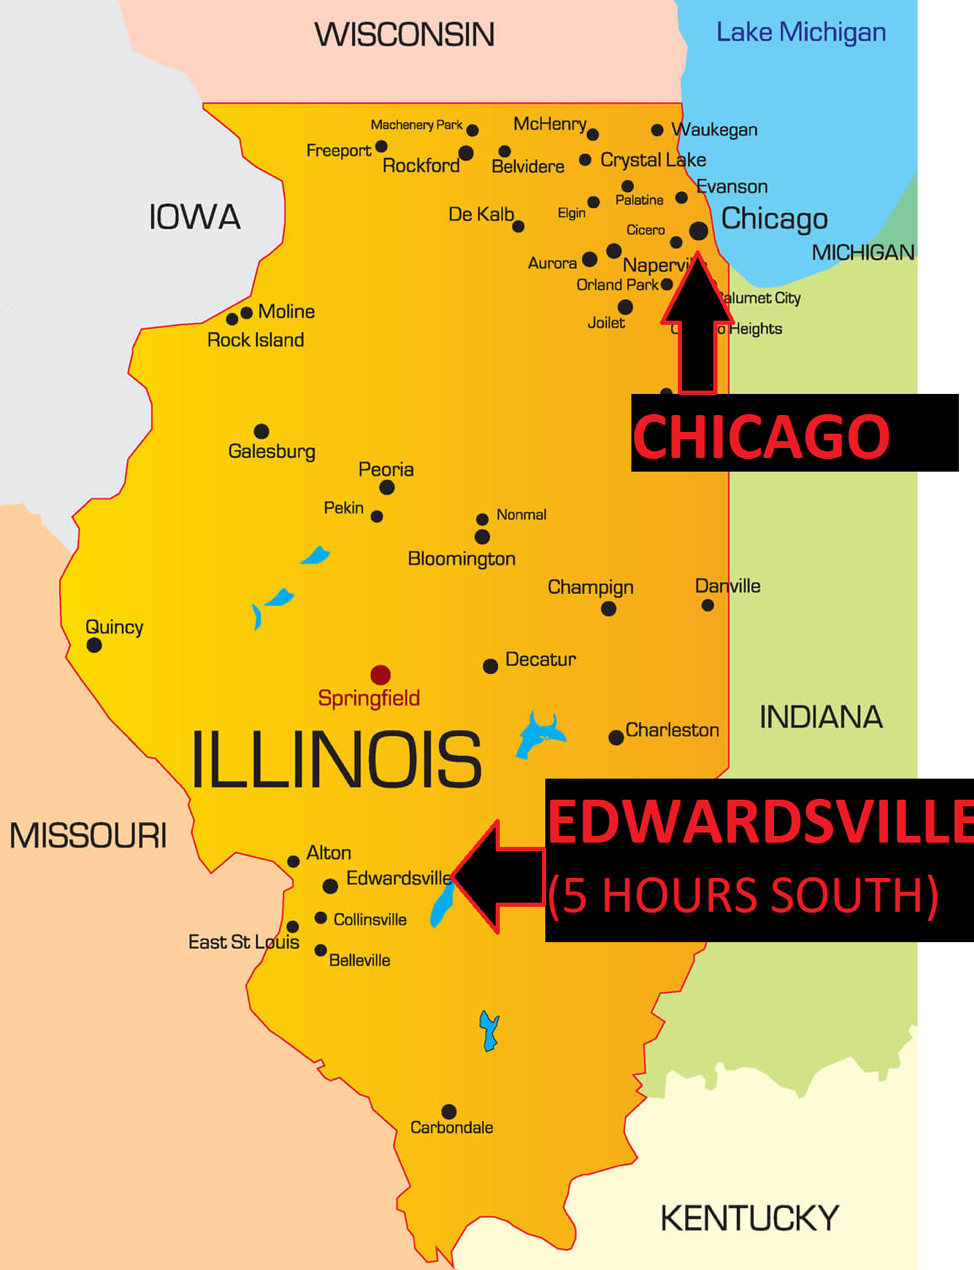 Map showing Chicago and Edwardsville, IL